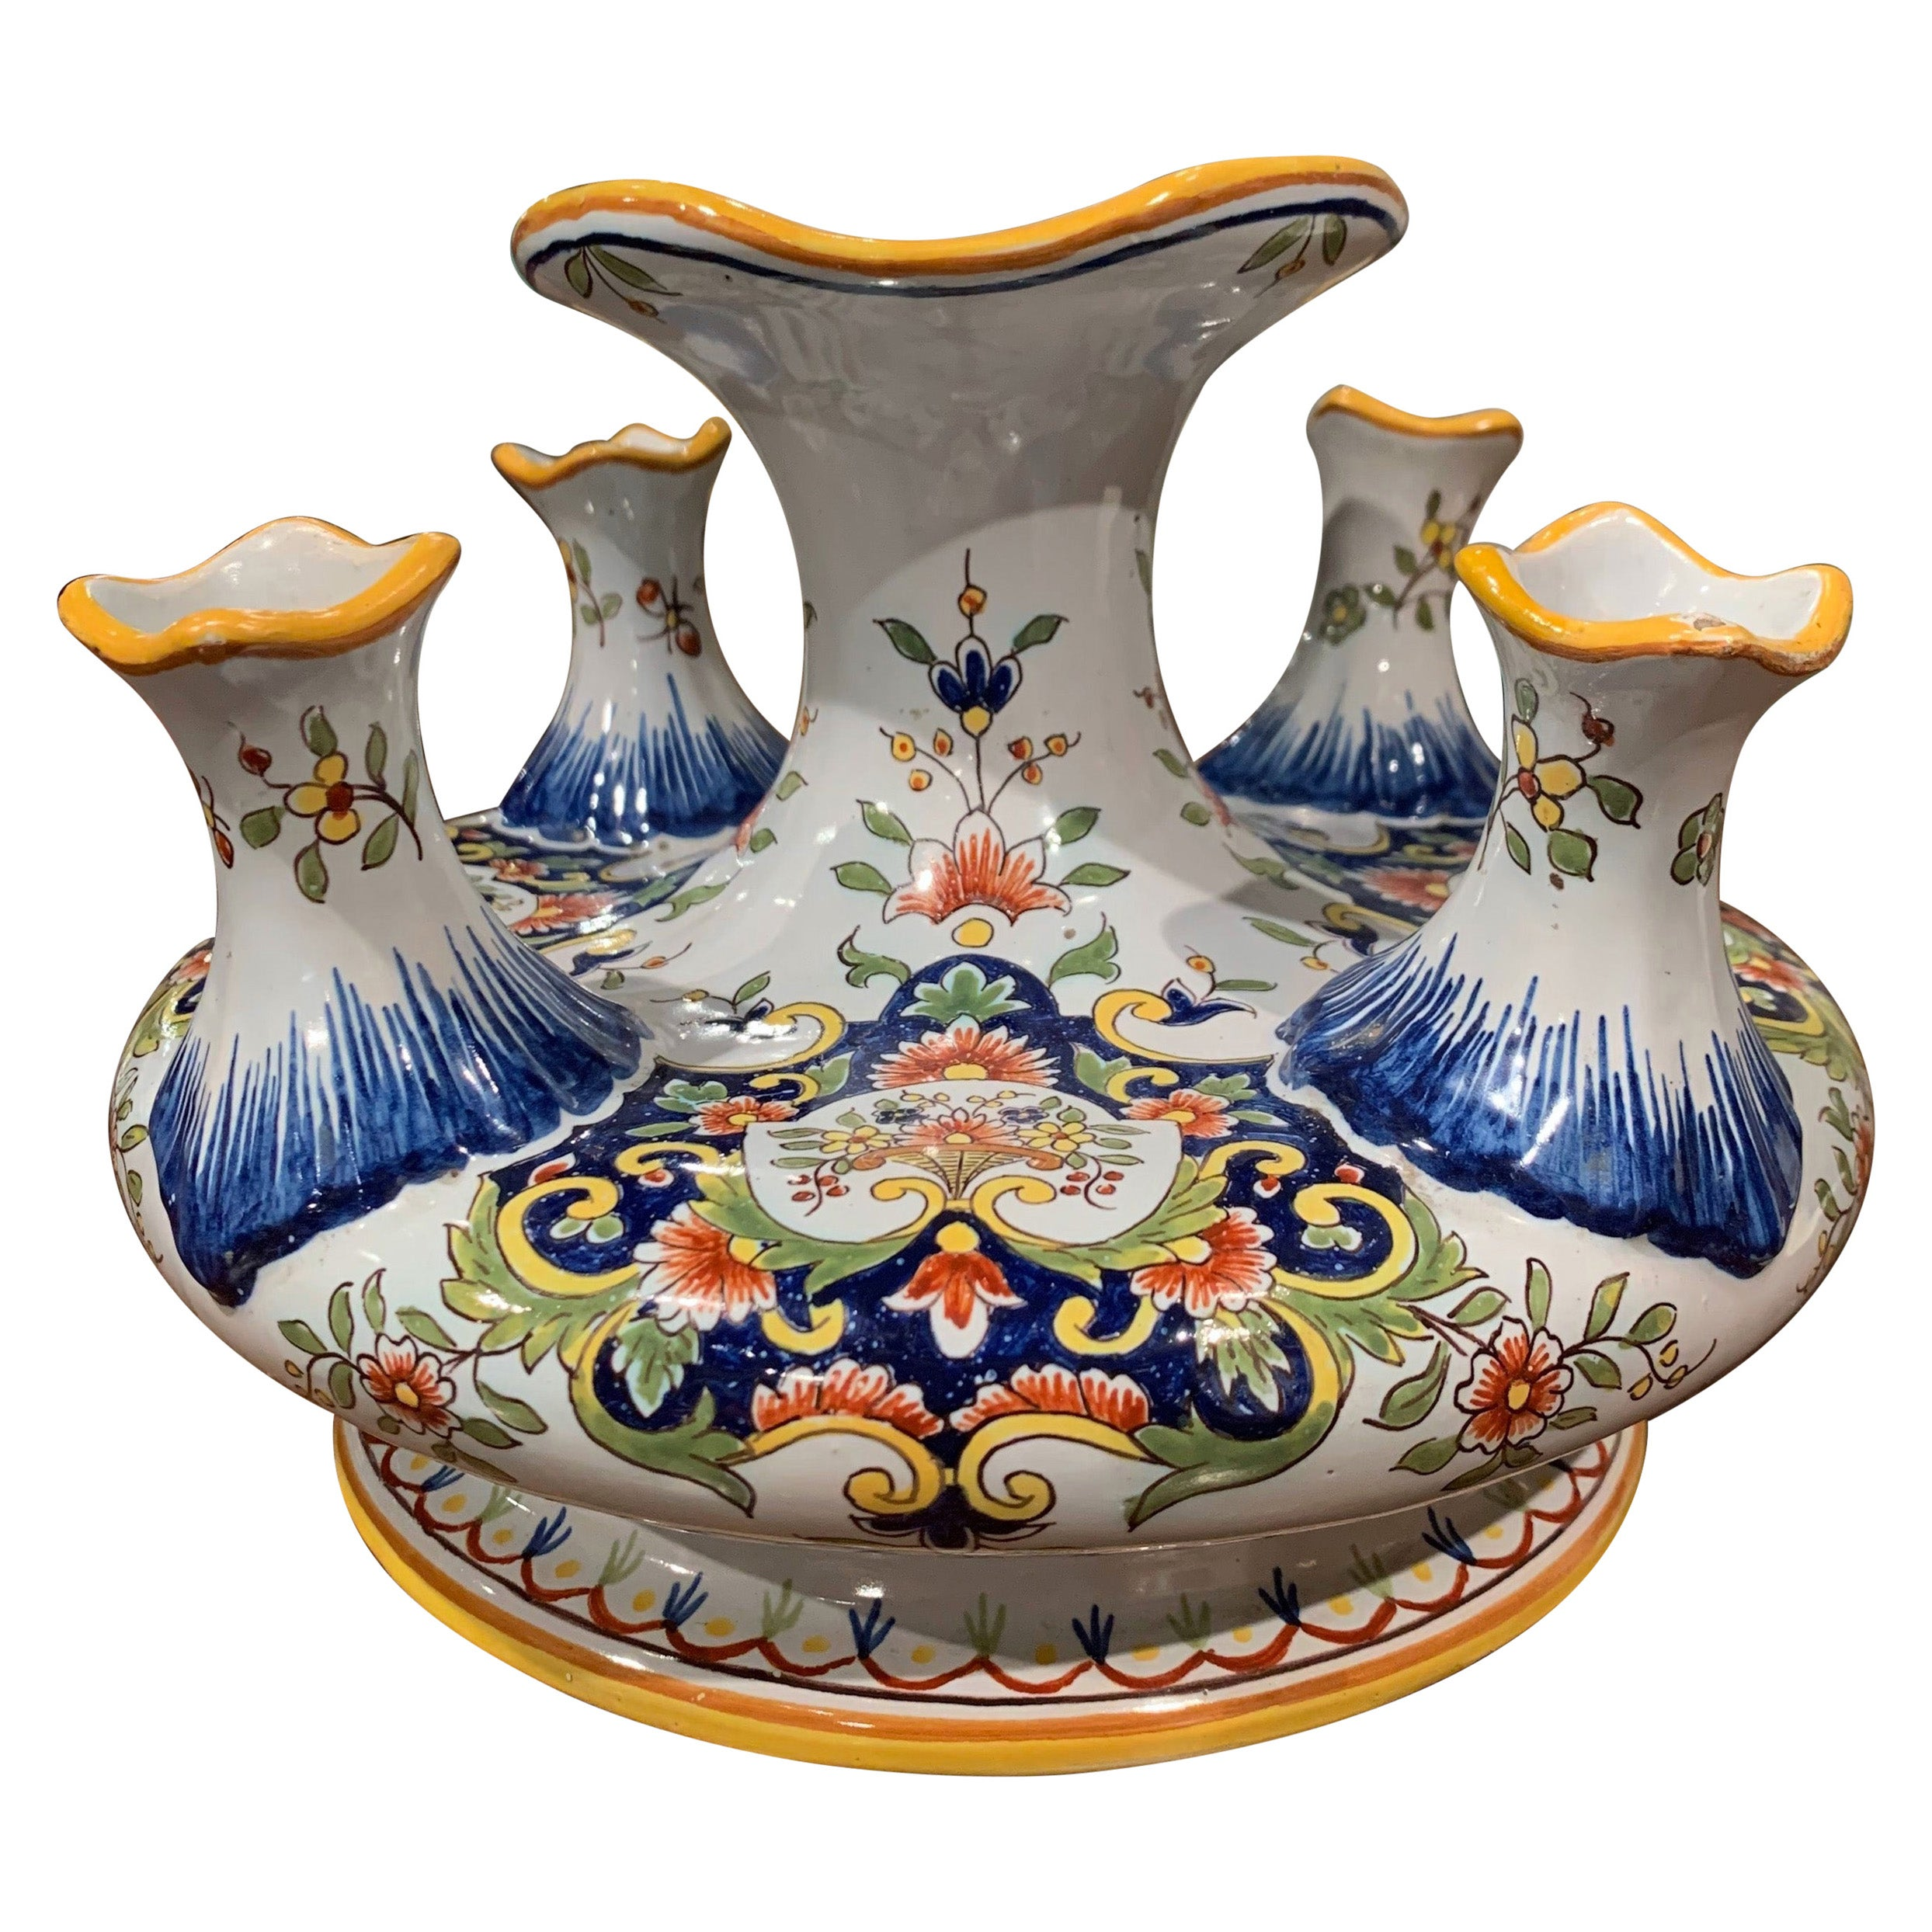 Early 20th Century French Hand Painted Faience Bouquetiere from Rouen